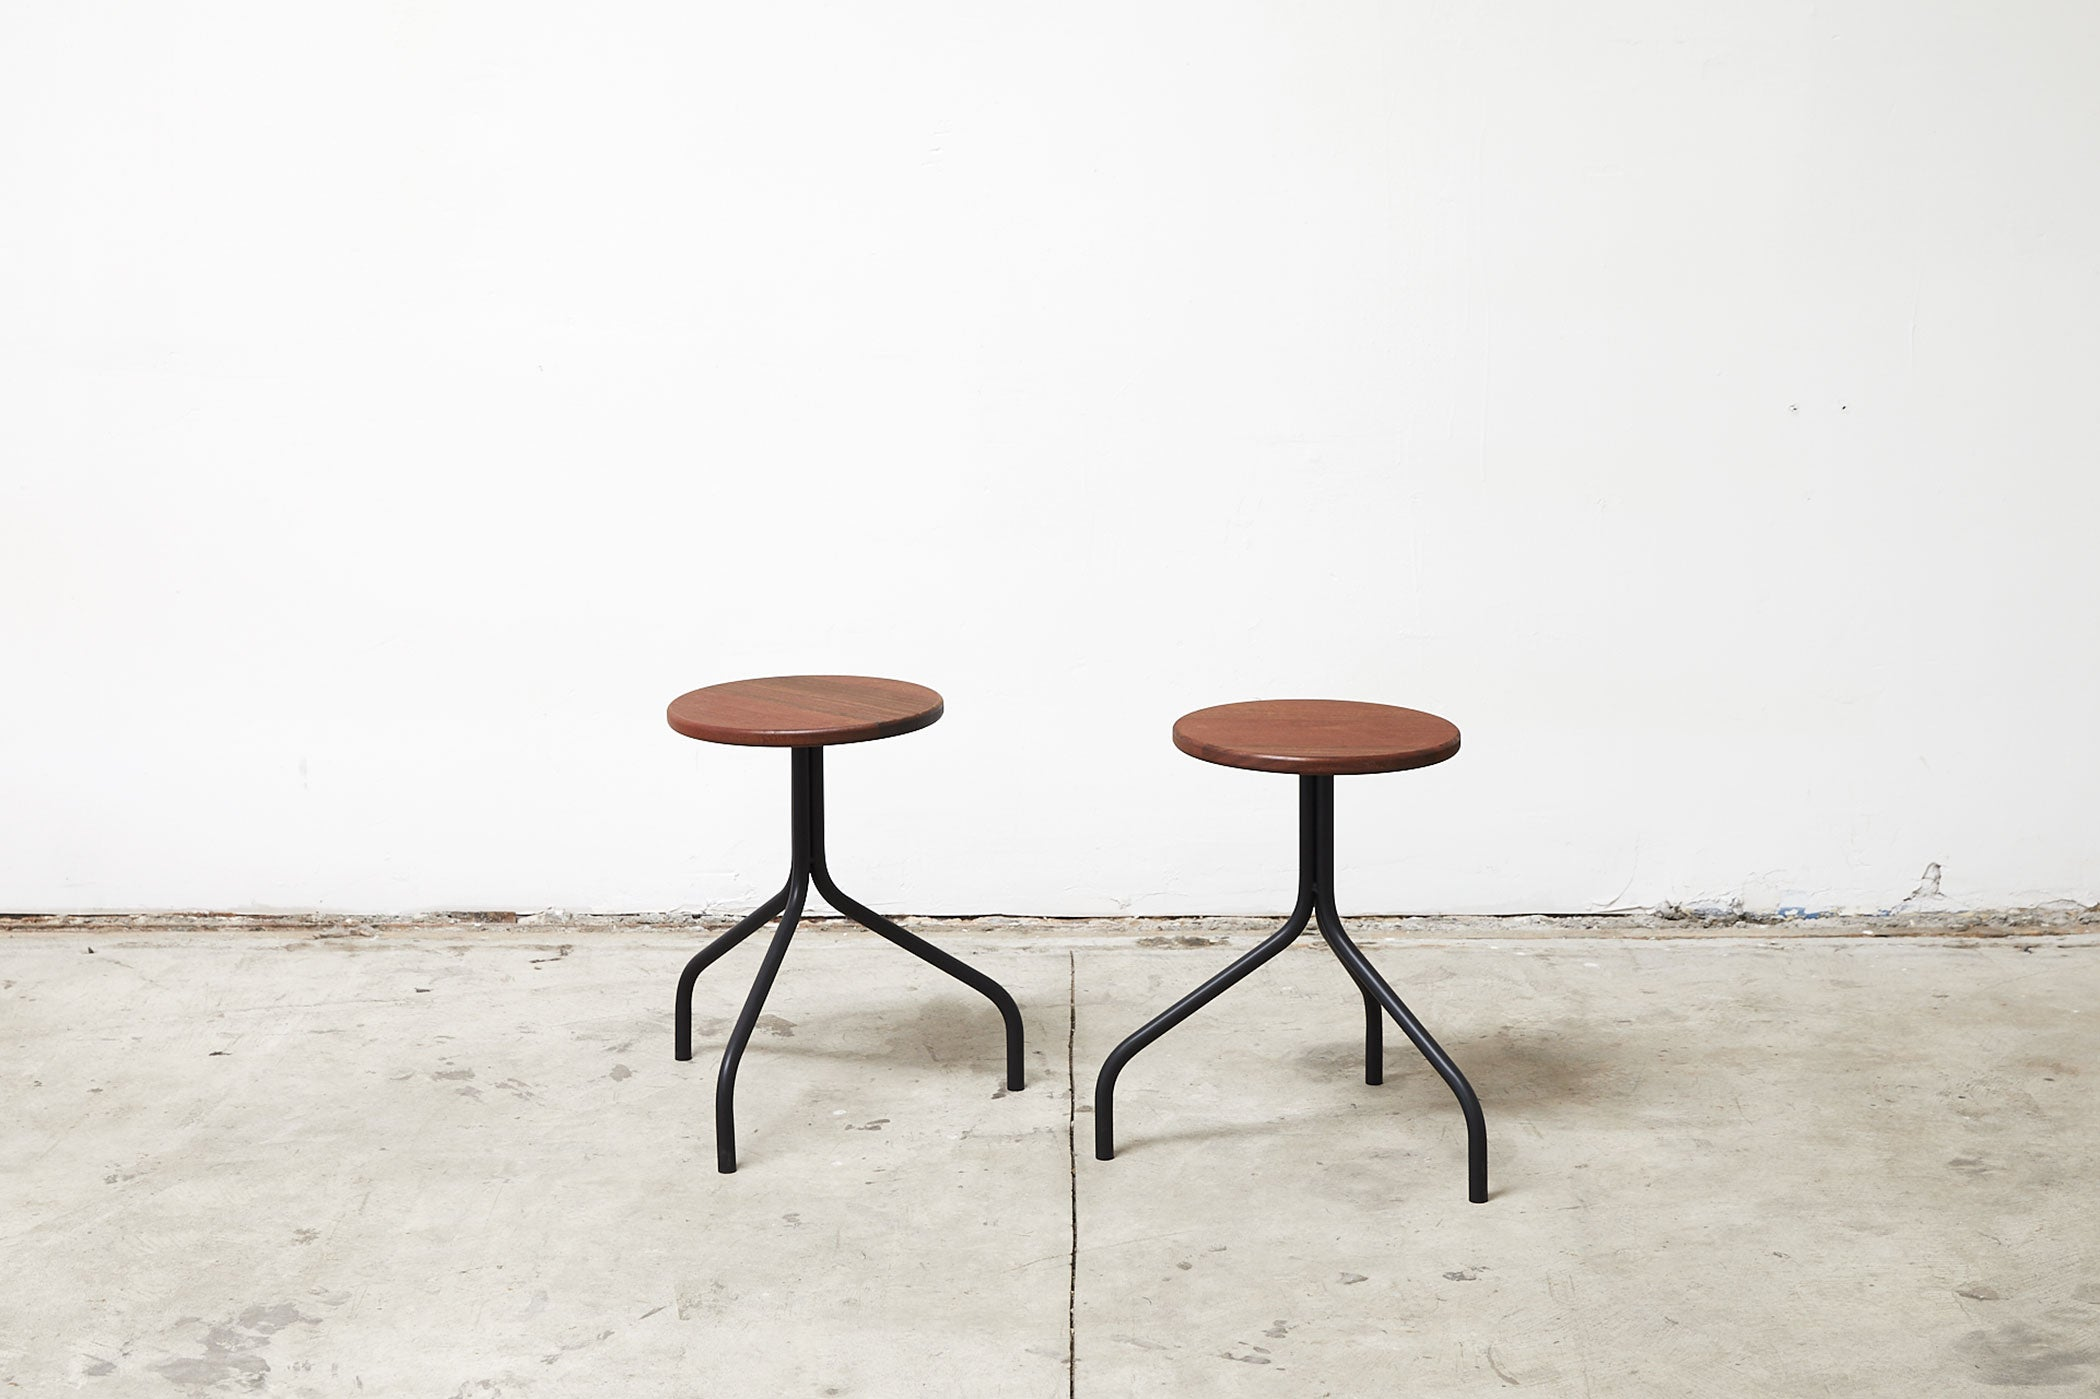 RAD Furniture's Round Wood-top Stools